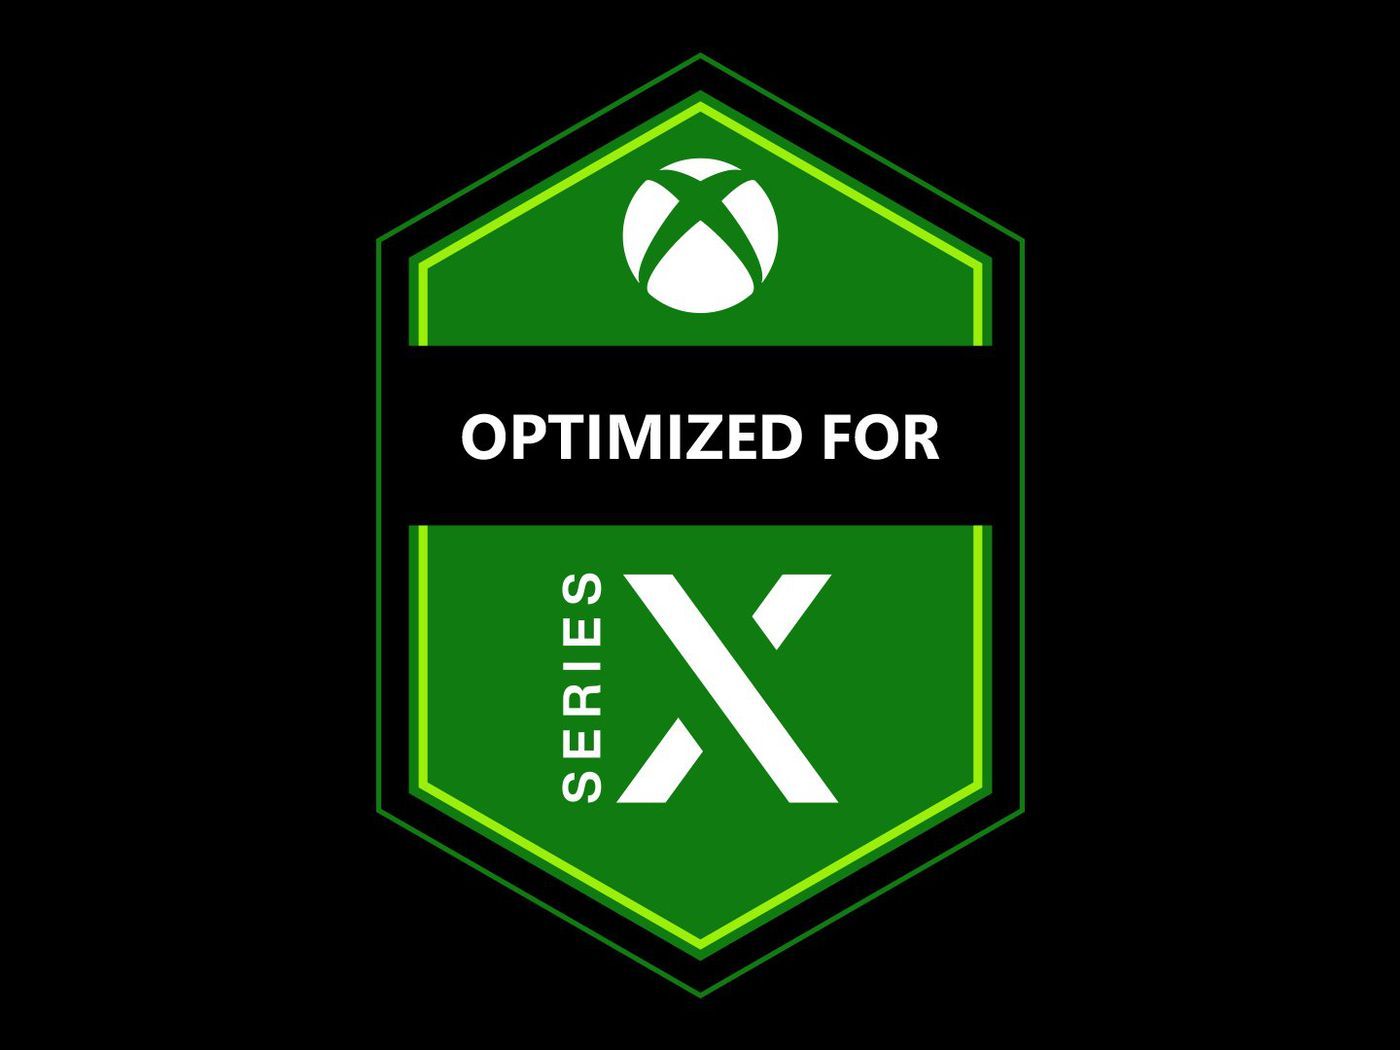 Xbox Series X Optimized Games 4k Up To 120fps Ray Tracing And Fast Load Times The Verge